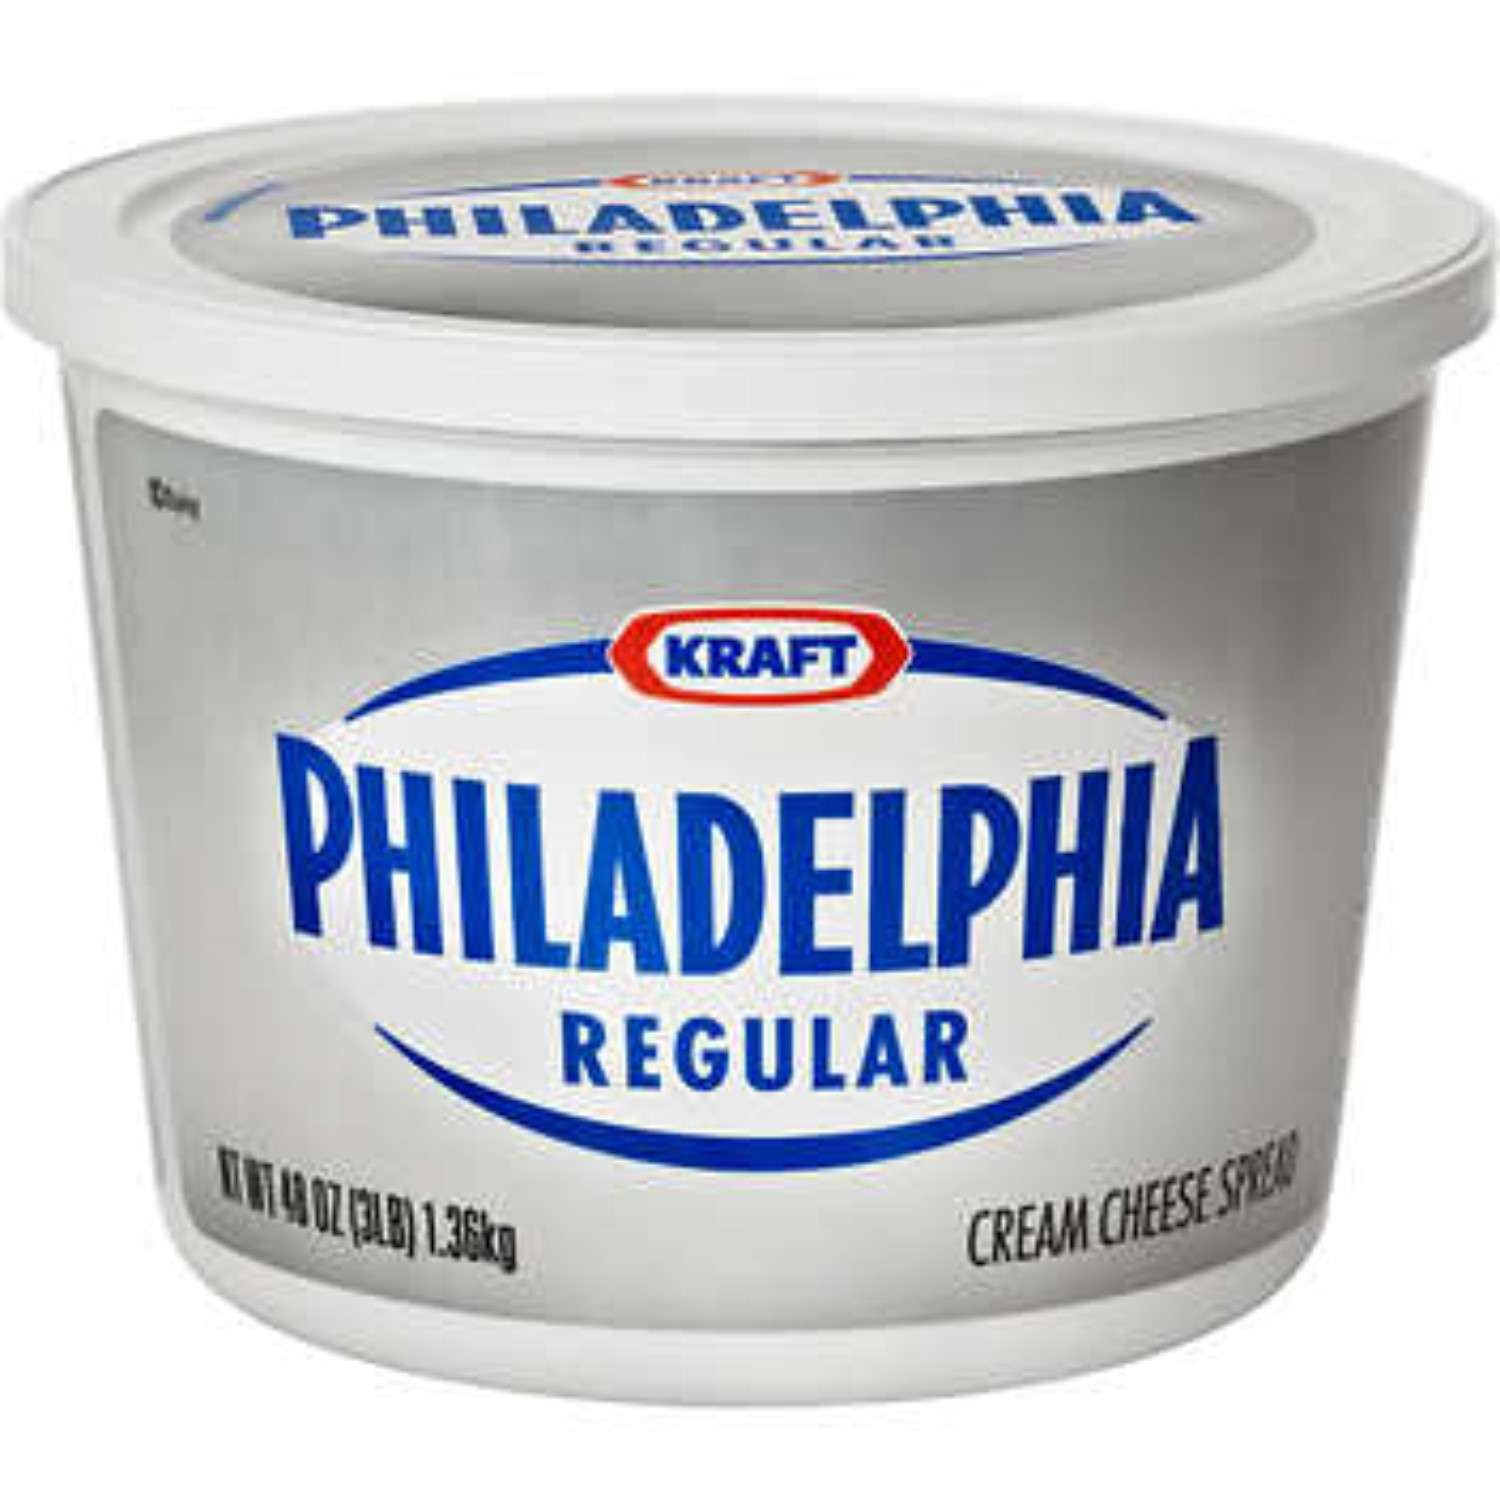 Fresh and Cream Cheeses